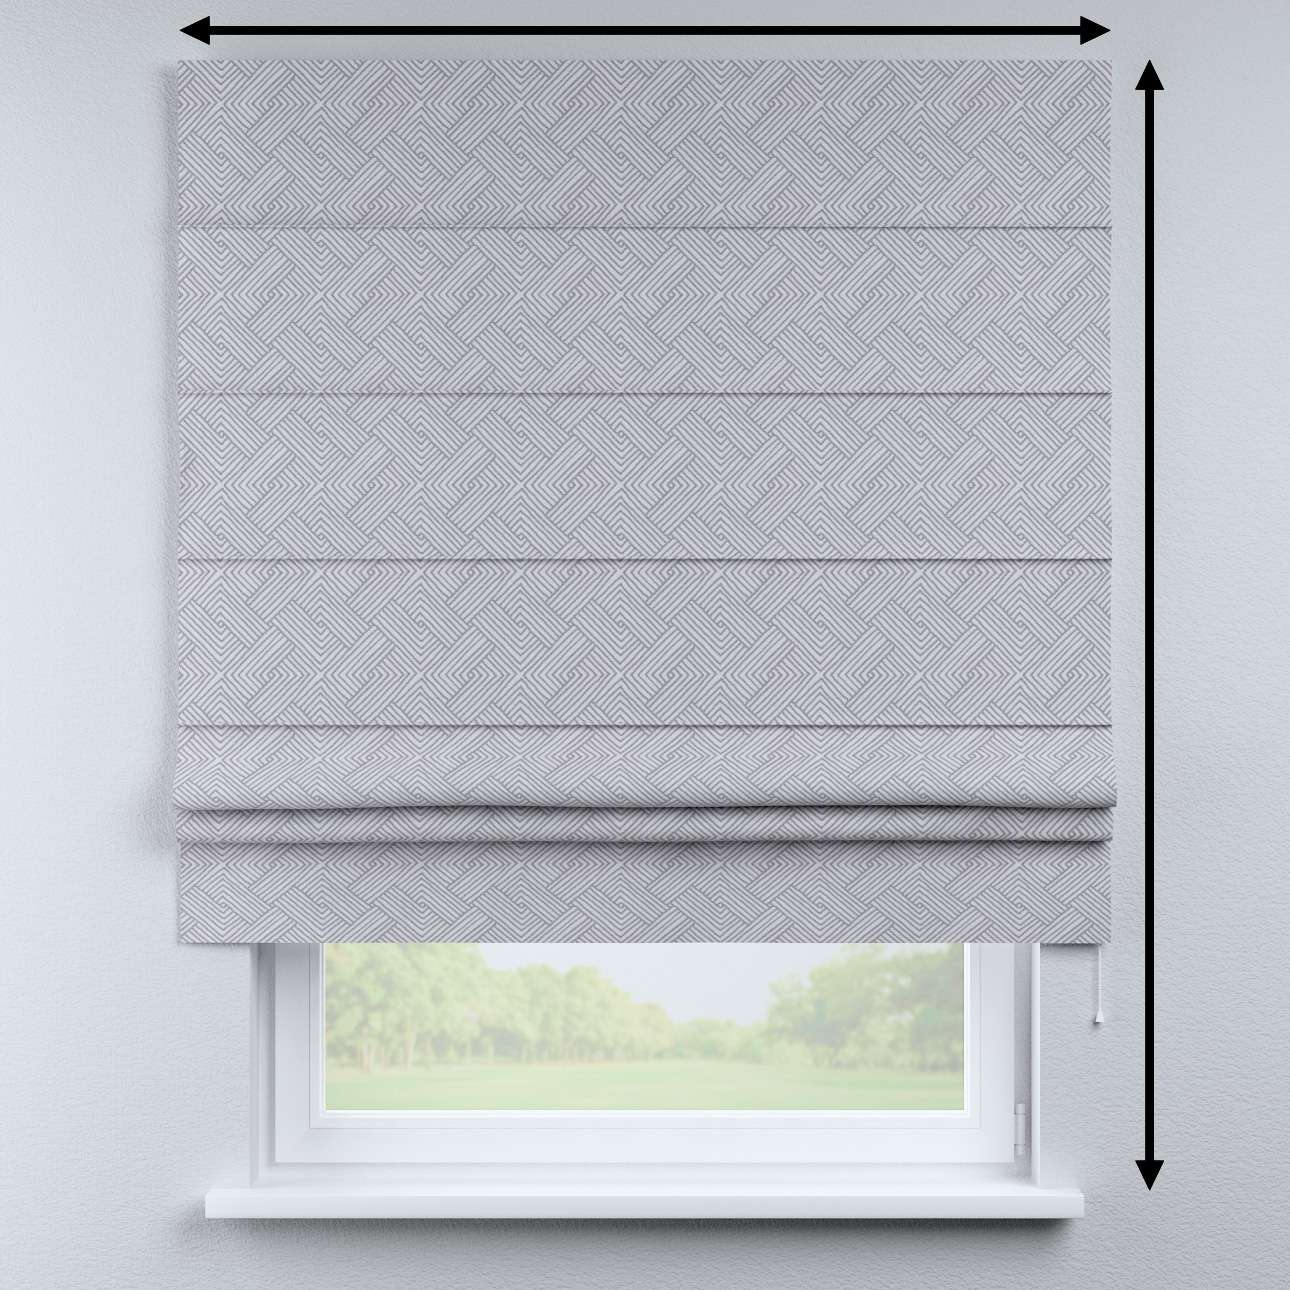 Padva roman blind in collection Sunny, fabric: 143-45